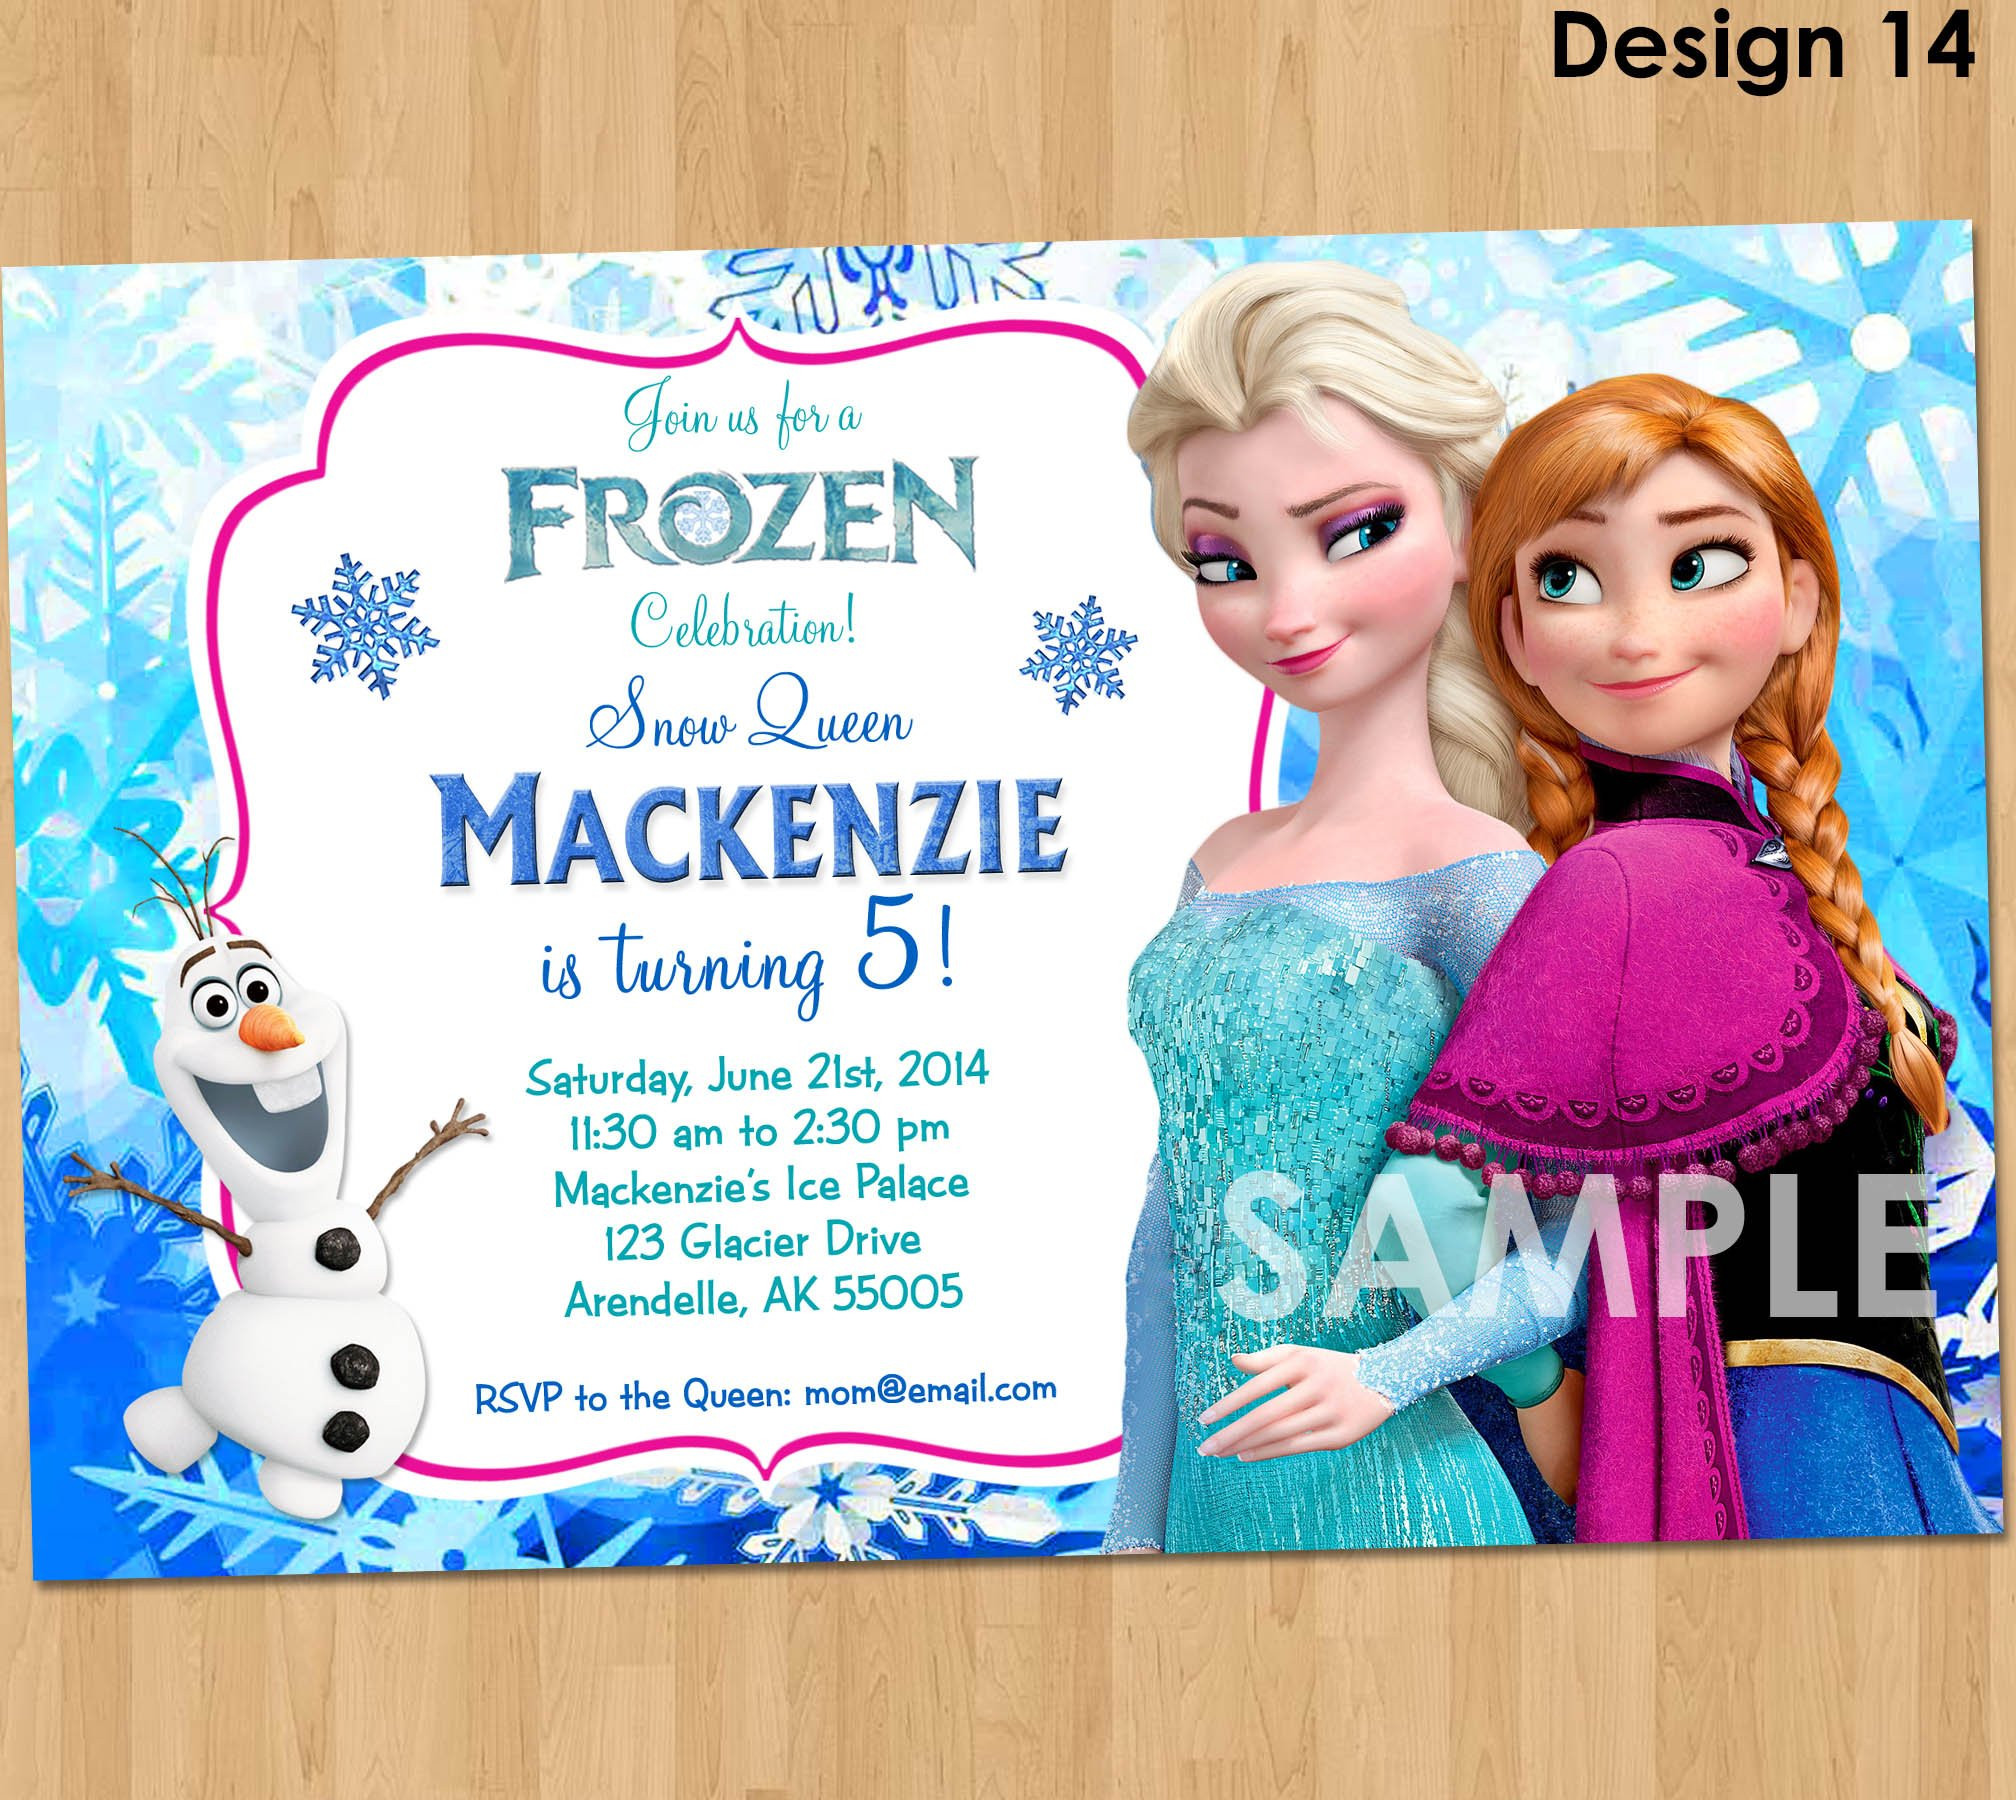 Frozen Invitations Printable Frozen Invitation Frozen Birthday Invitation Disney Frozen Party Invites Birthday Party Ideas Printable Elsa Anna Olaf